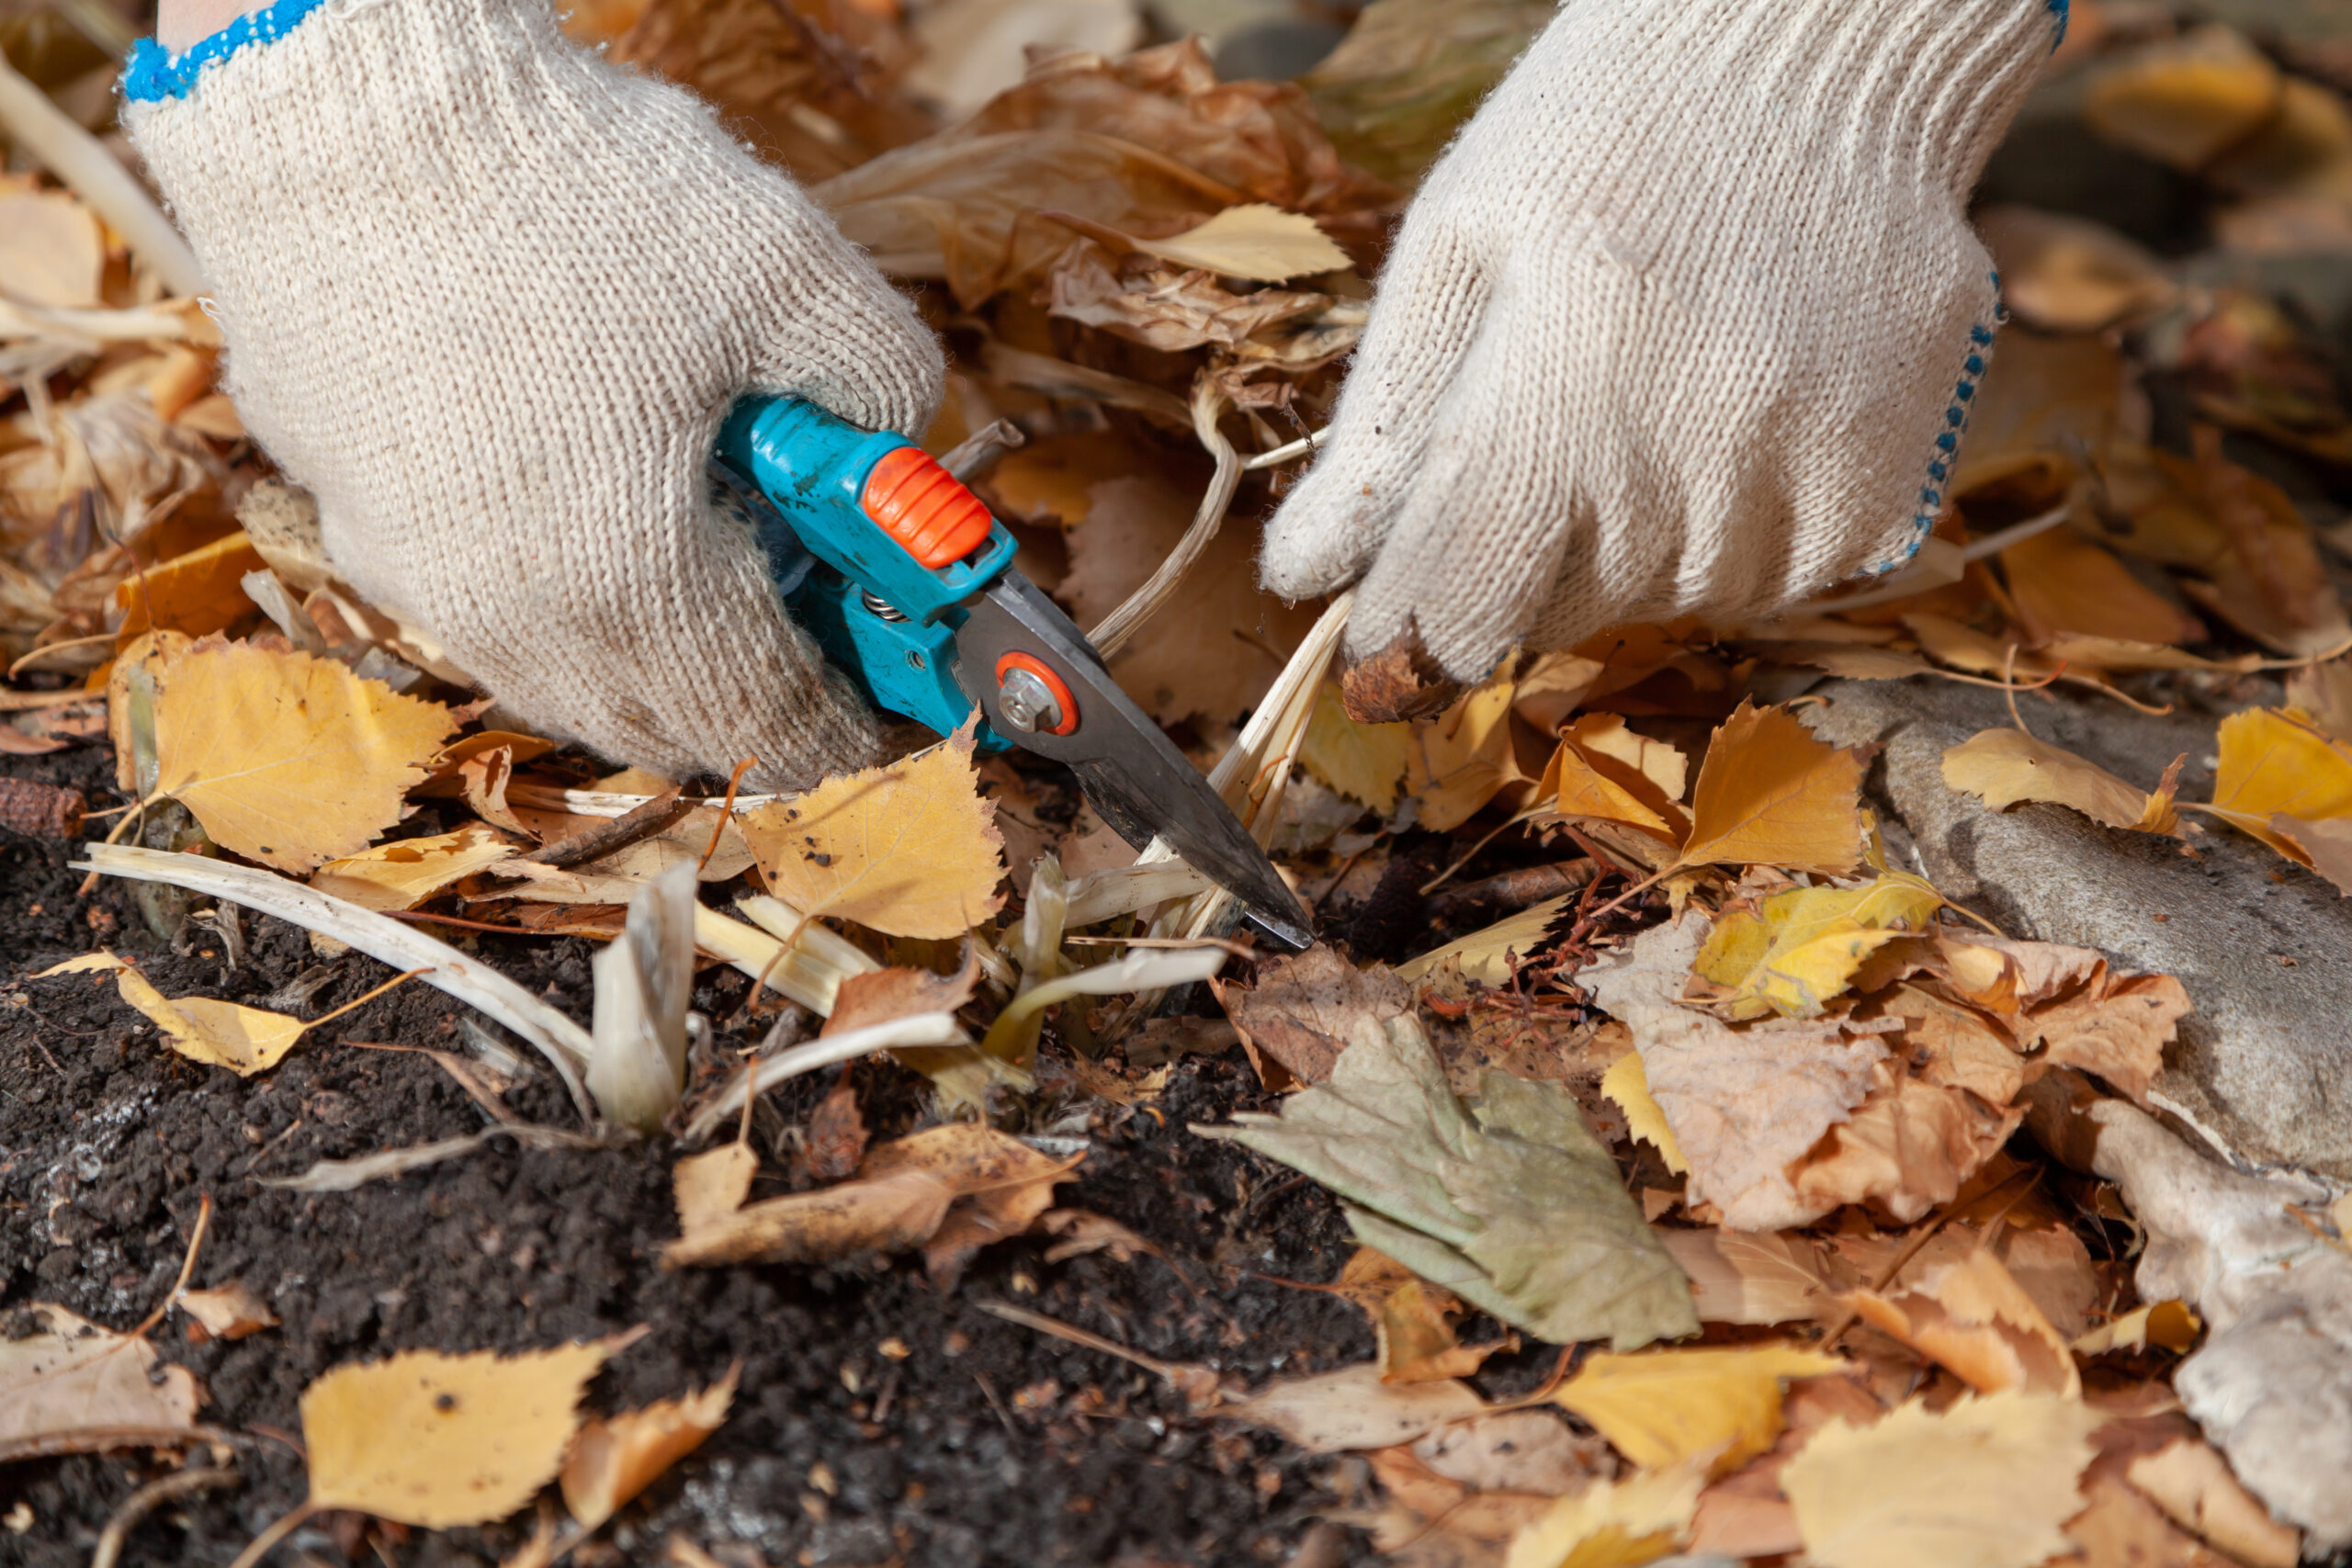 Hands in white gloves trim the yellow stems of the host plant with garden clippers closeup. Around the fallen birch leaves